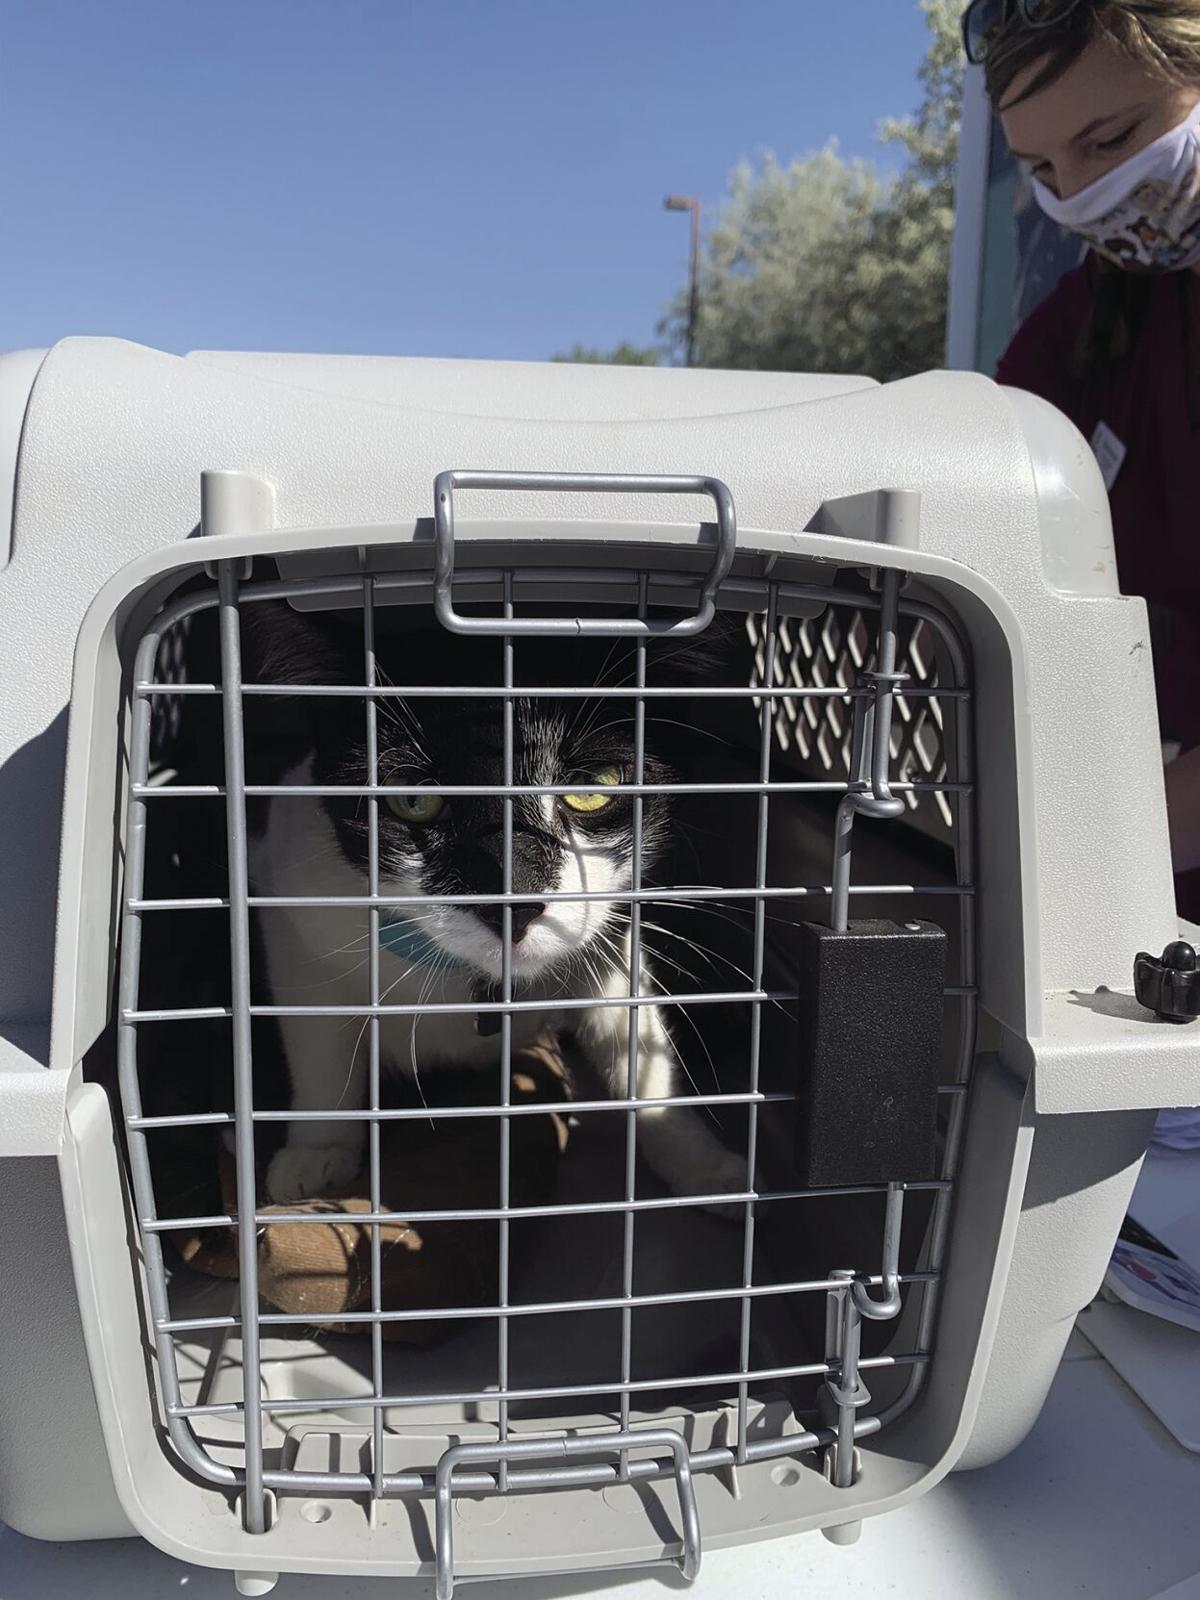 HSPPR program brings low-cost veterinary care to community critters